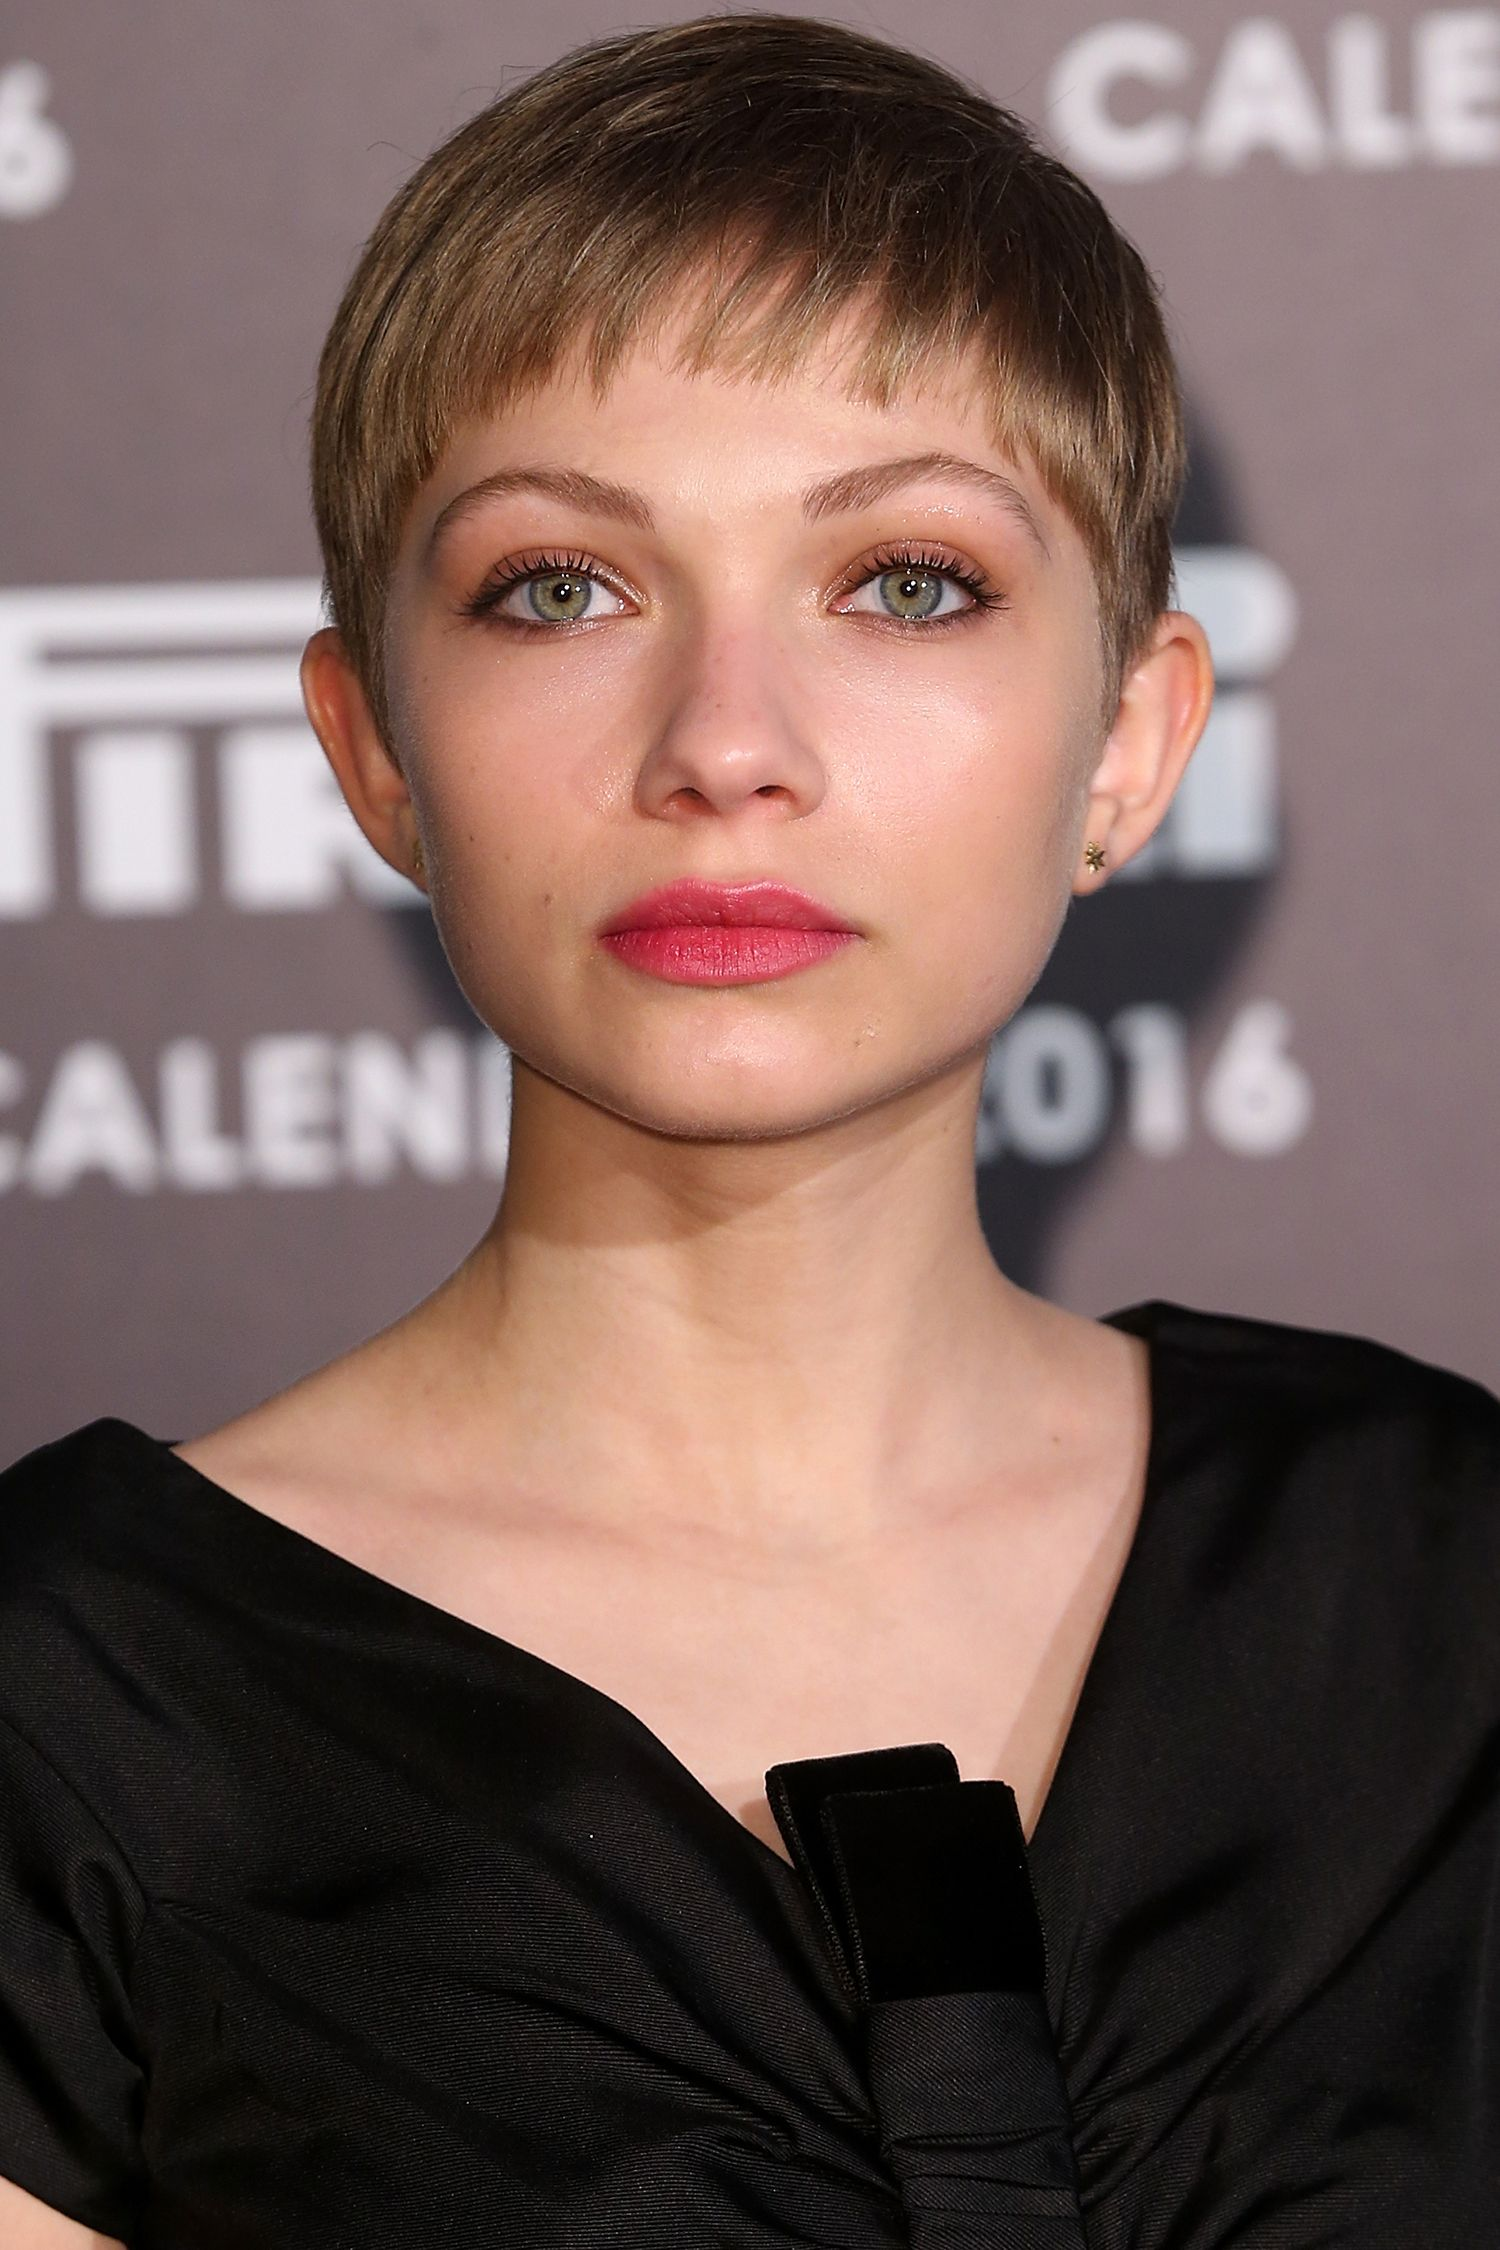 Pleasing 42 Pixie Cuts We Love For 2017 Short Pixie Hairstyles From Short Hairstyles Gunalazisus